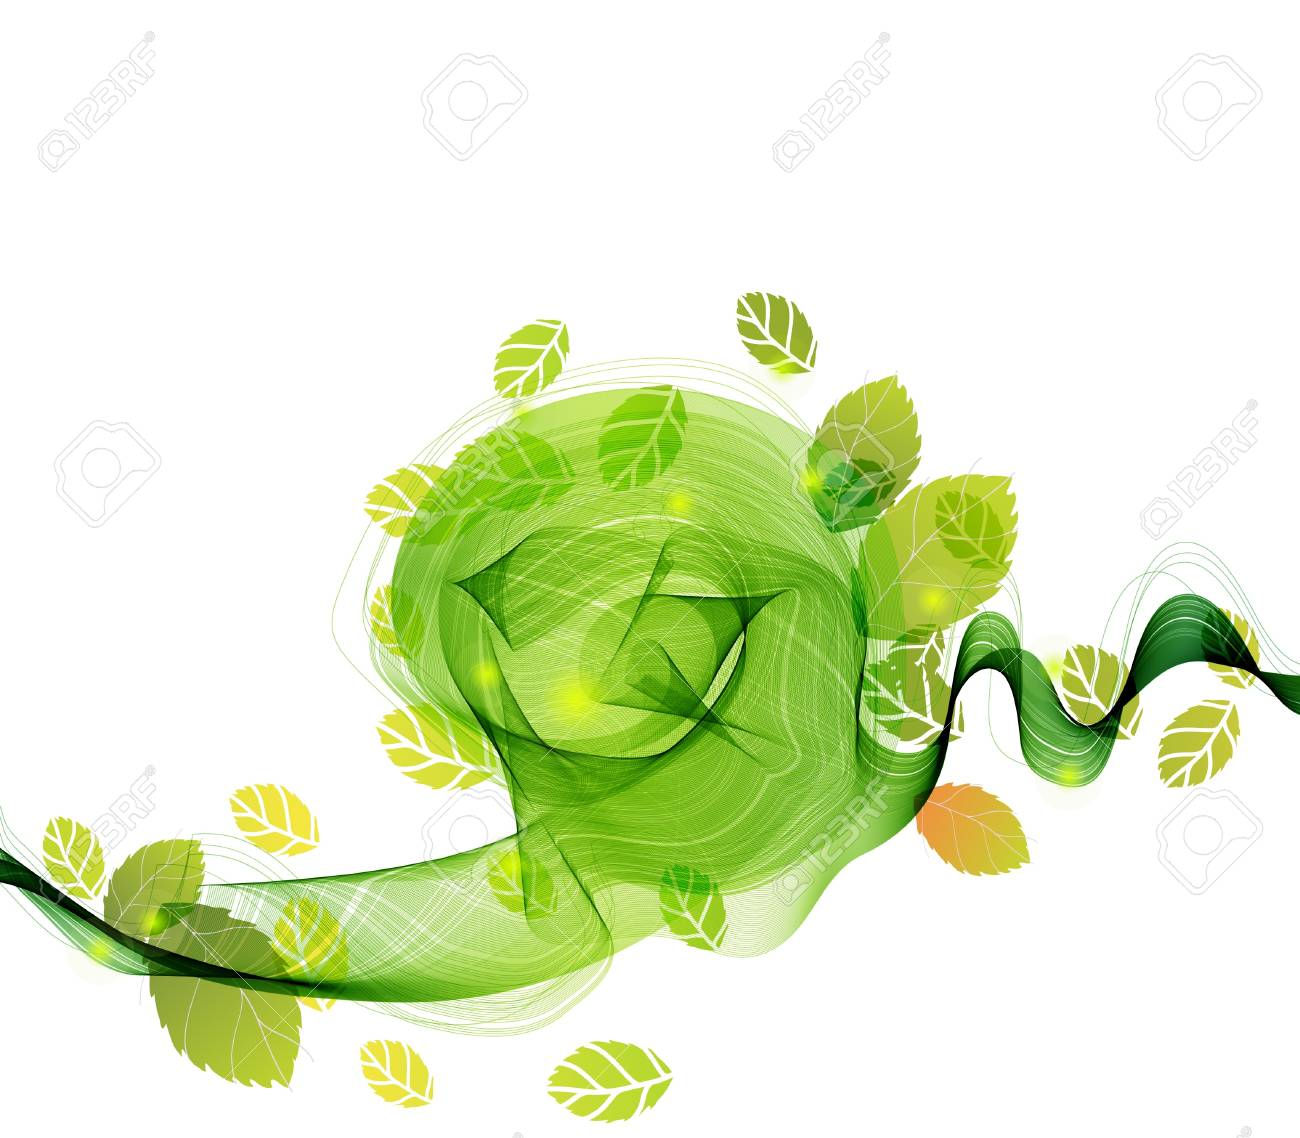 abstract background with fresh green leaves and wave, illustration for your design Stock Vector - 14095291